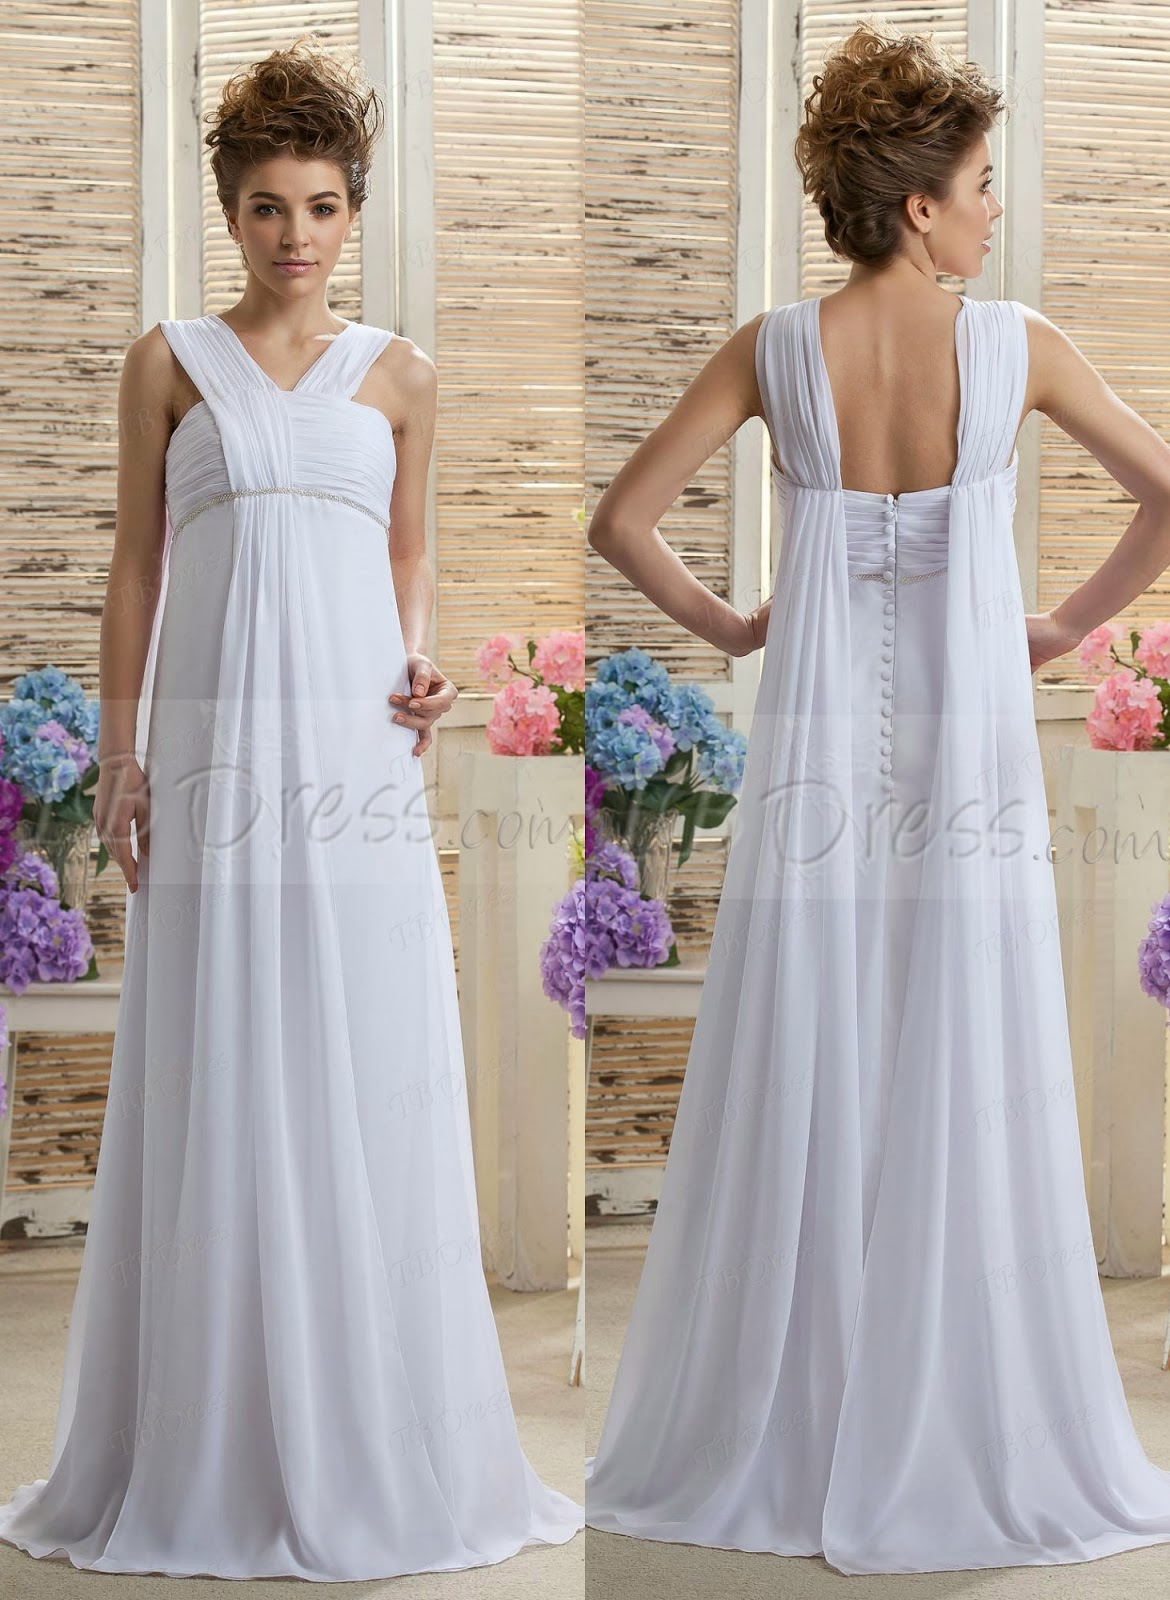 Wedding Dresses Maternity